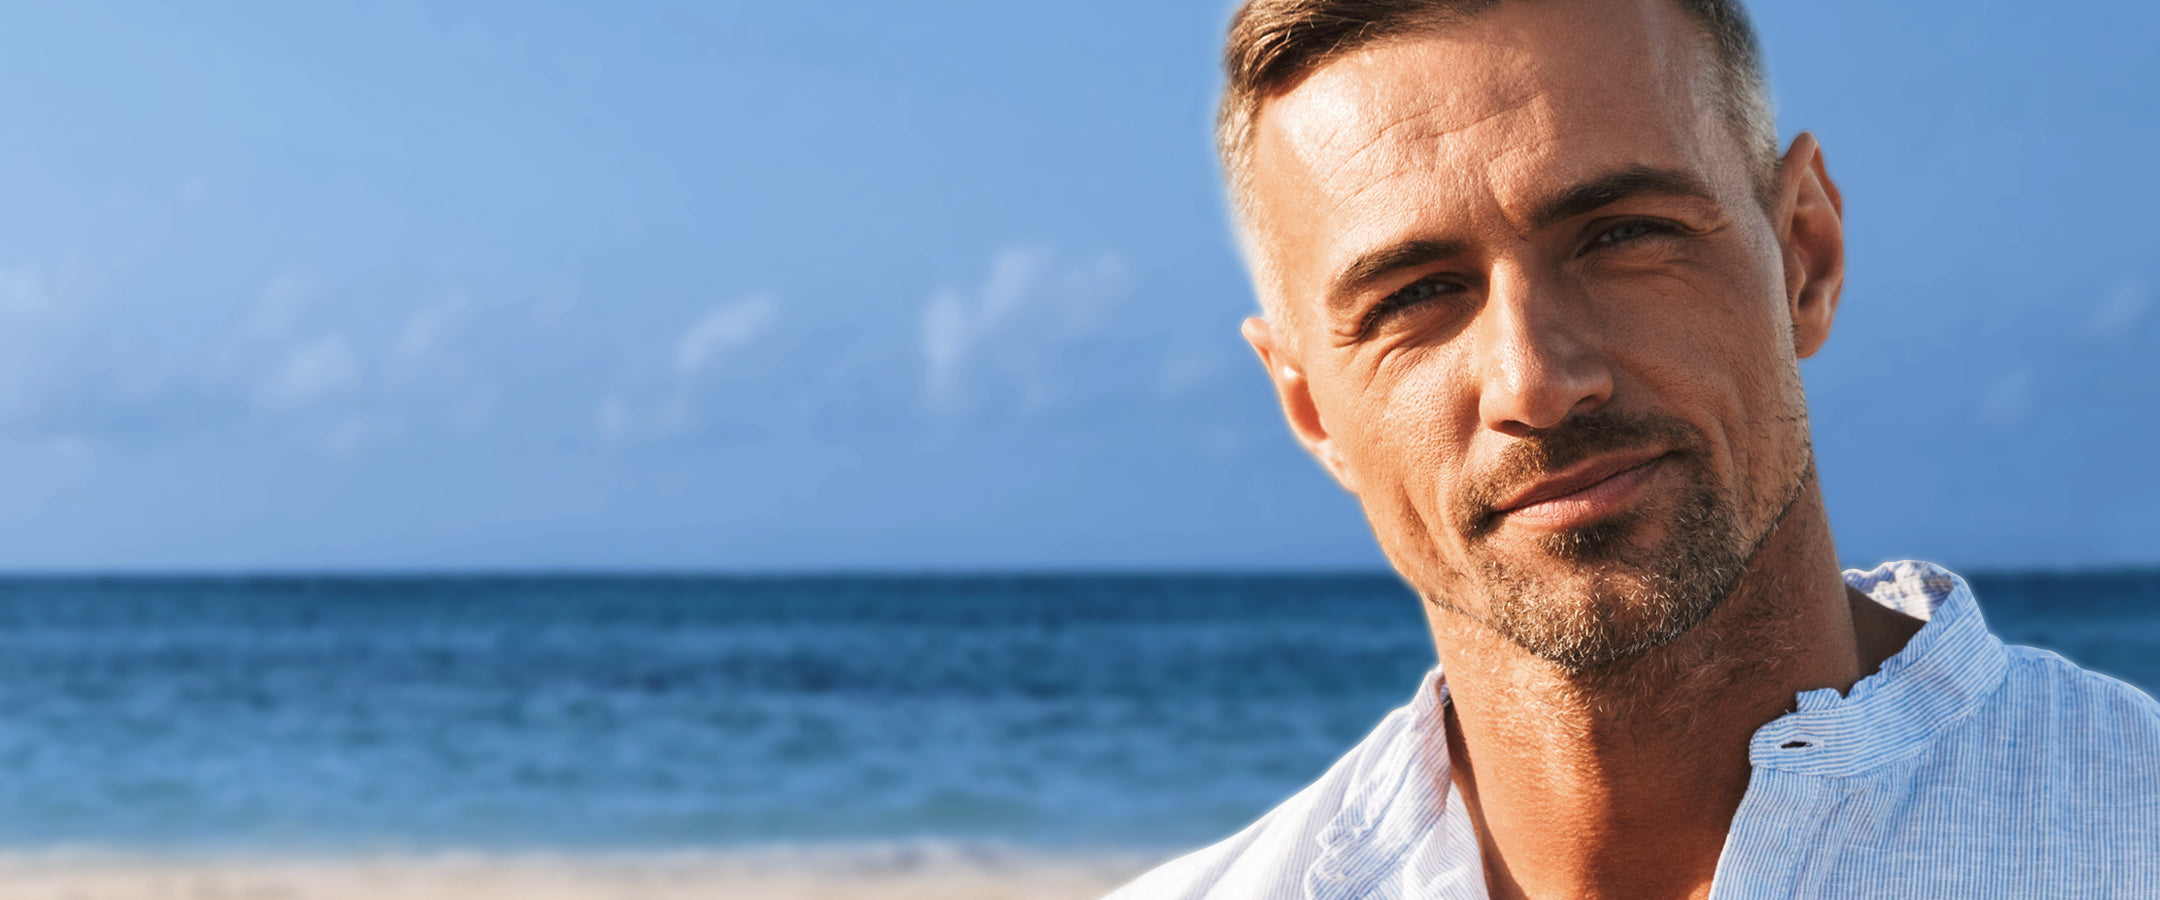 Are you protecting your skin from skin cancer?